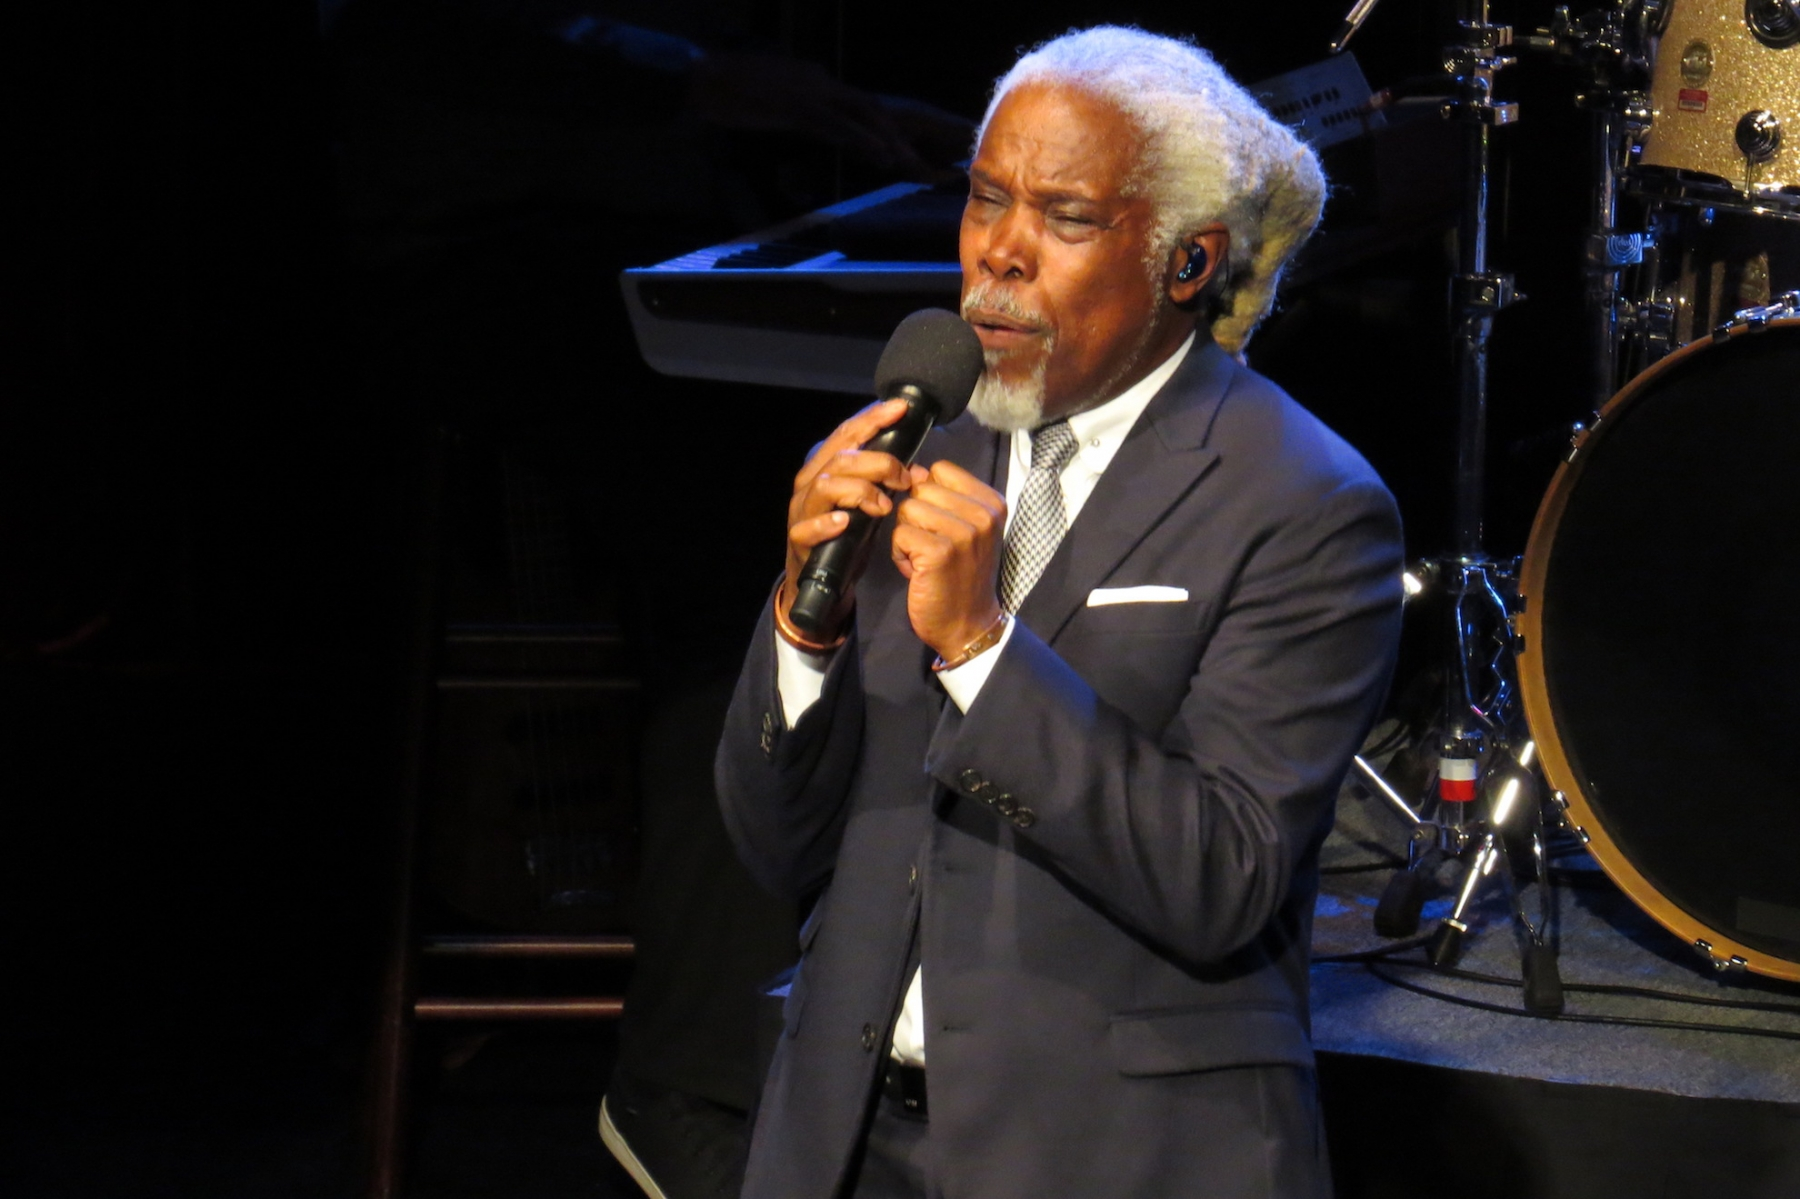 billy ocean - photo #19